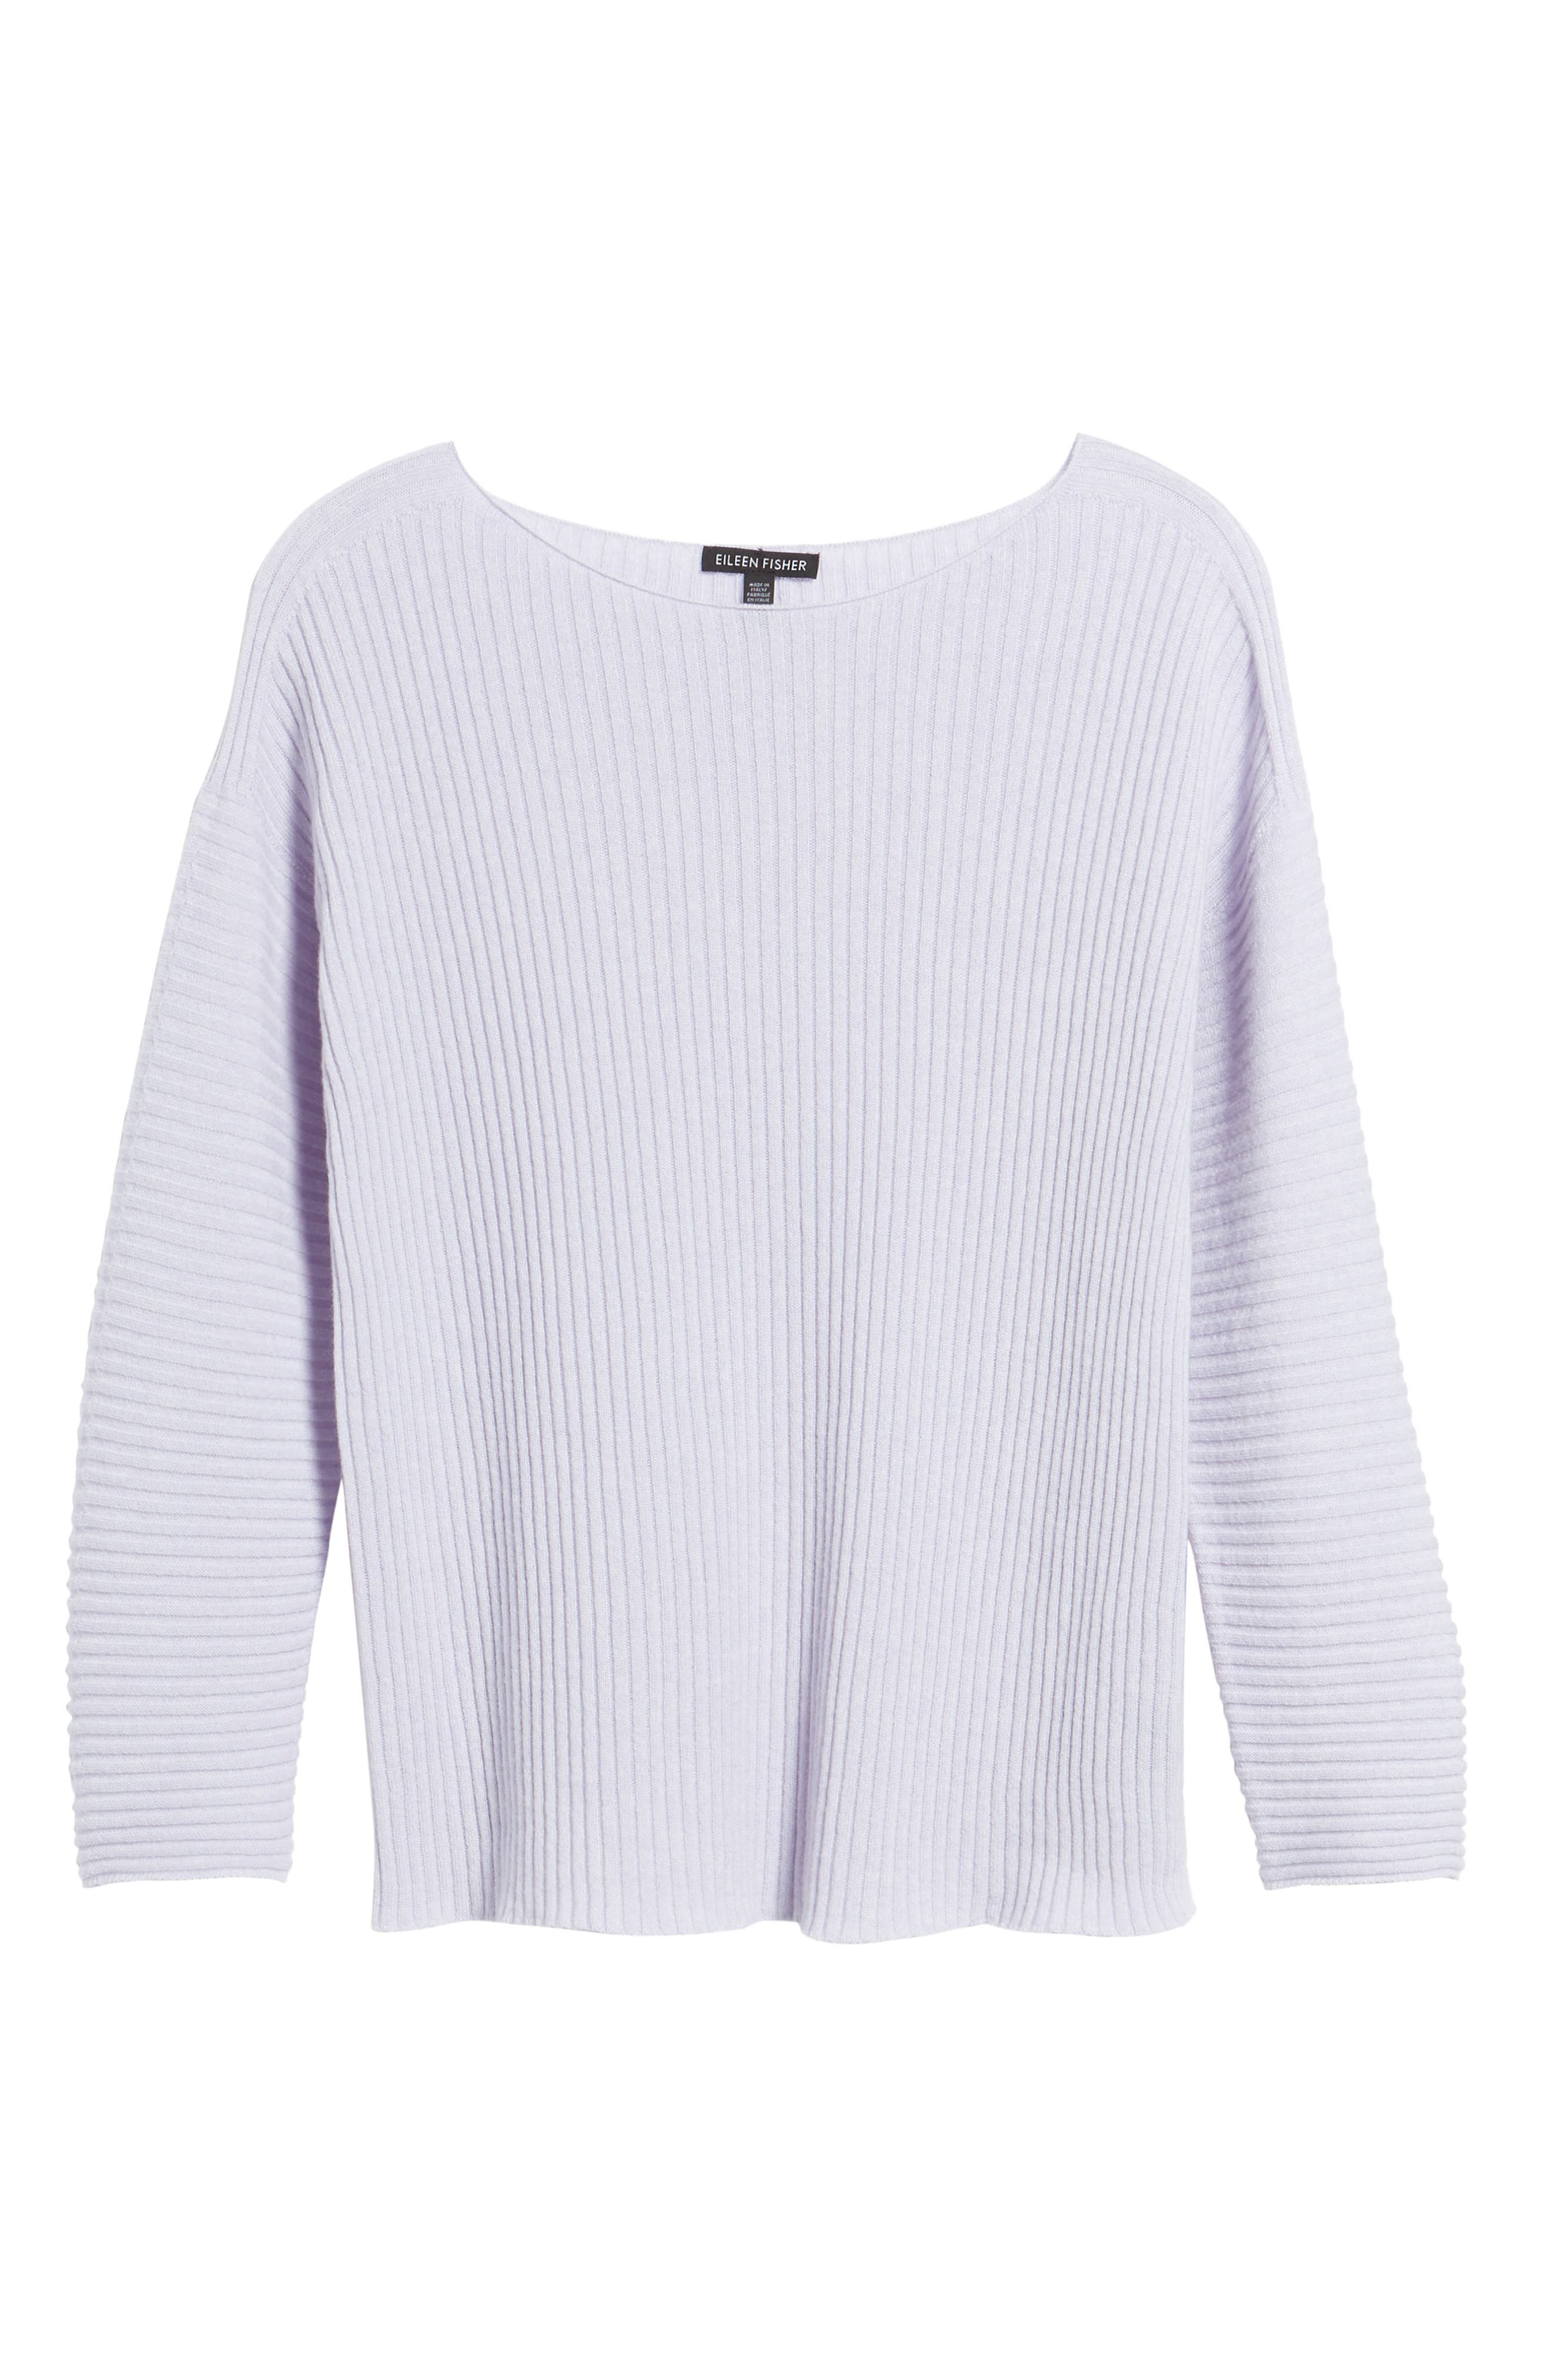 Ribbed Cashmere Sweater,                             Alternate thumbnail 6, color,                             Moon